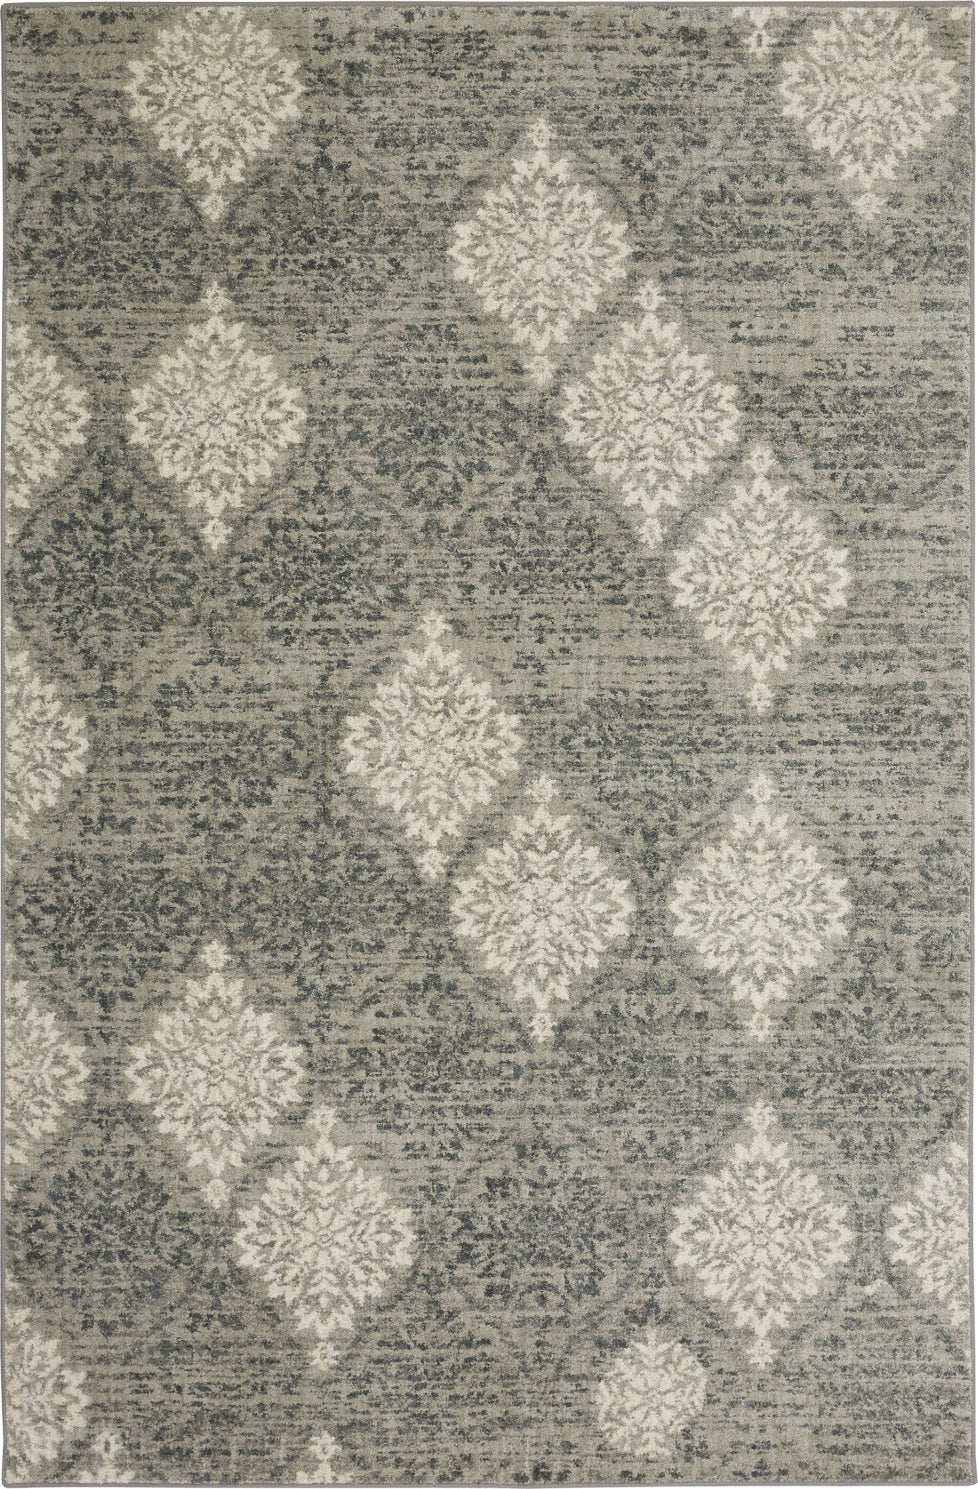 Karastan Euphoria Wexford Willow Grey Area Rug main image